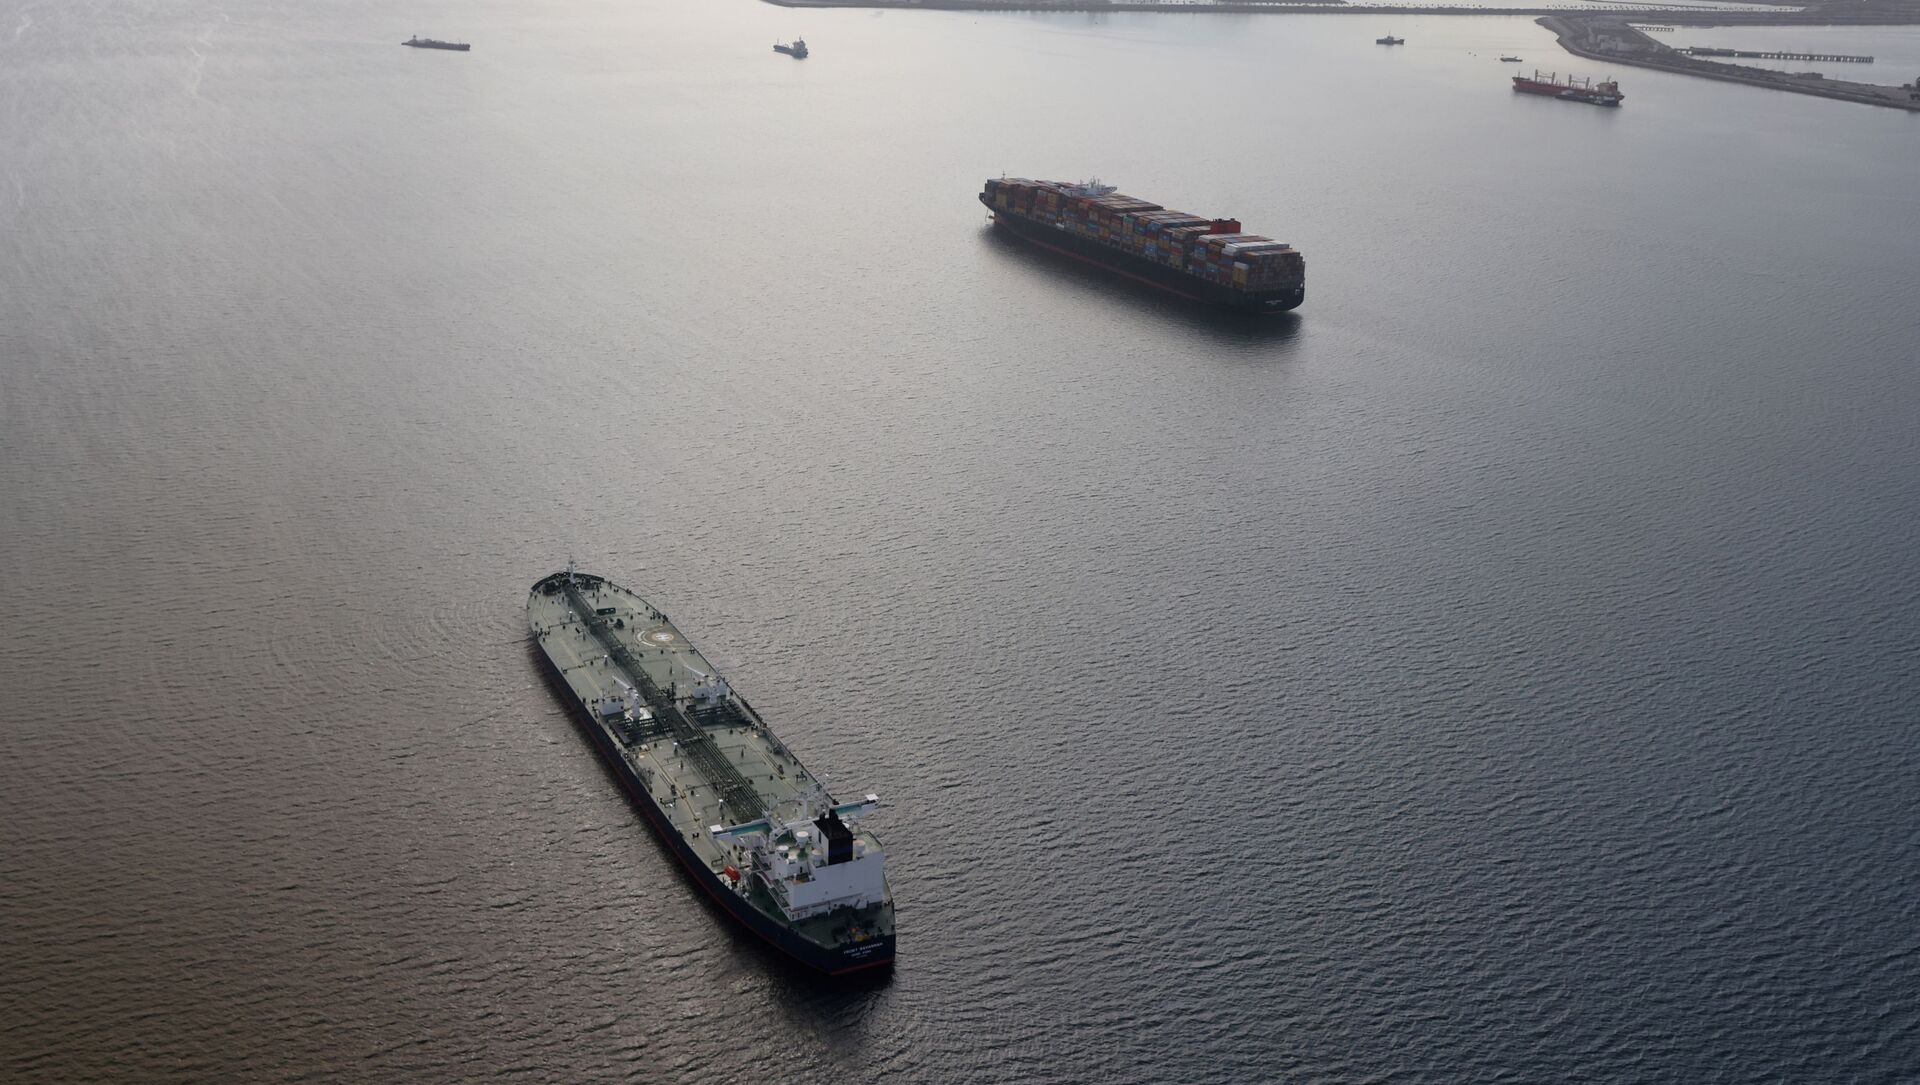 An oil tanker waits in line in the ocean outside the Port of Long Beach-Port of Los Angeles complex, amid the coronavirus disease (COVID-19) pandemic, in Los Angeles, California, U.S., April 7, 2021 - Sputnik International, 1920, 31.07.2021